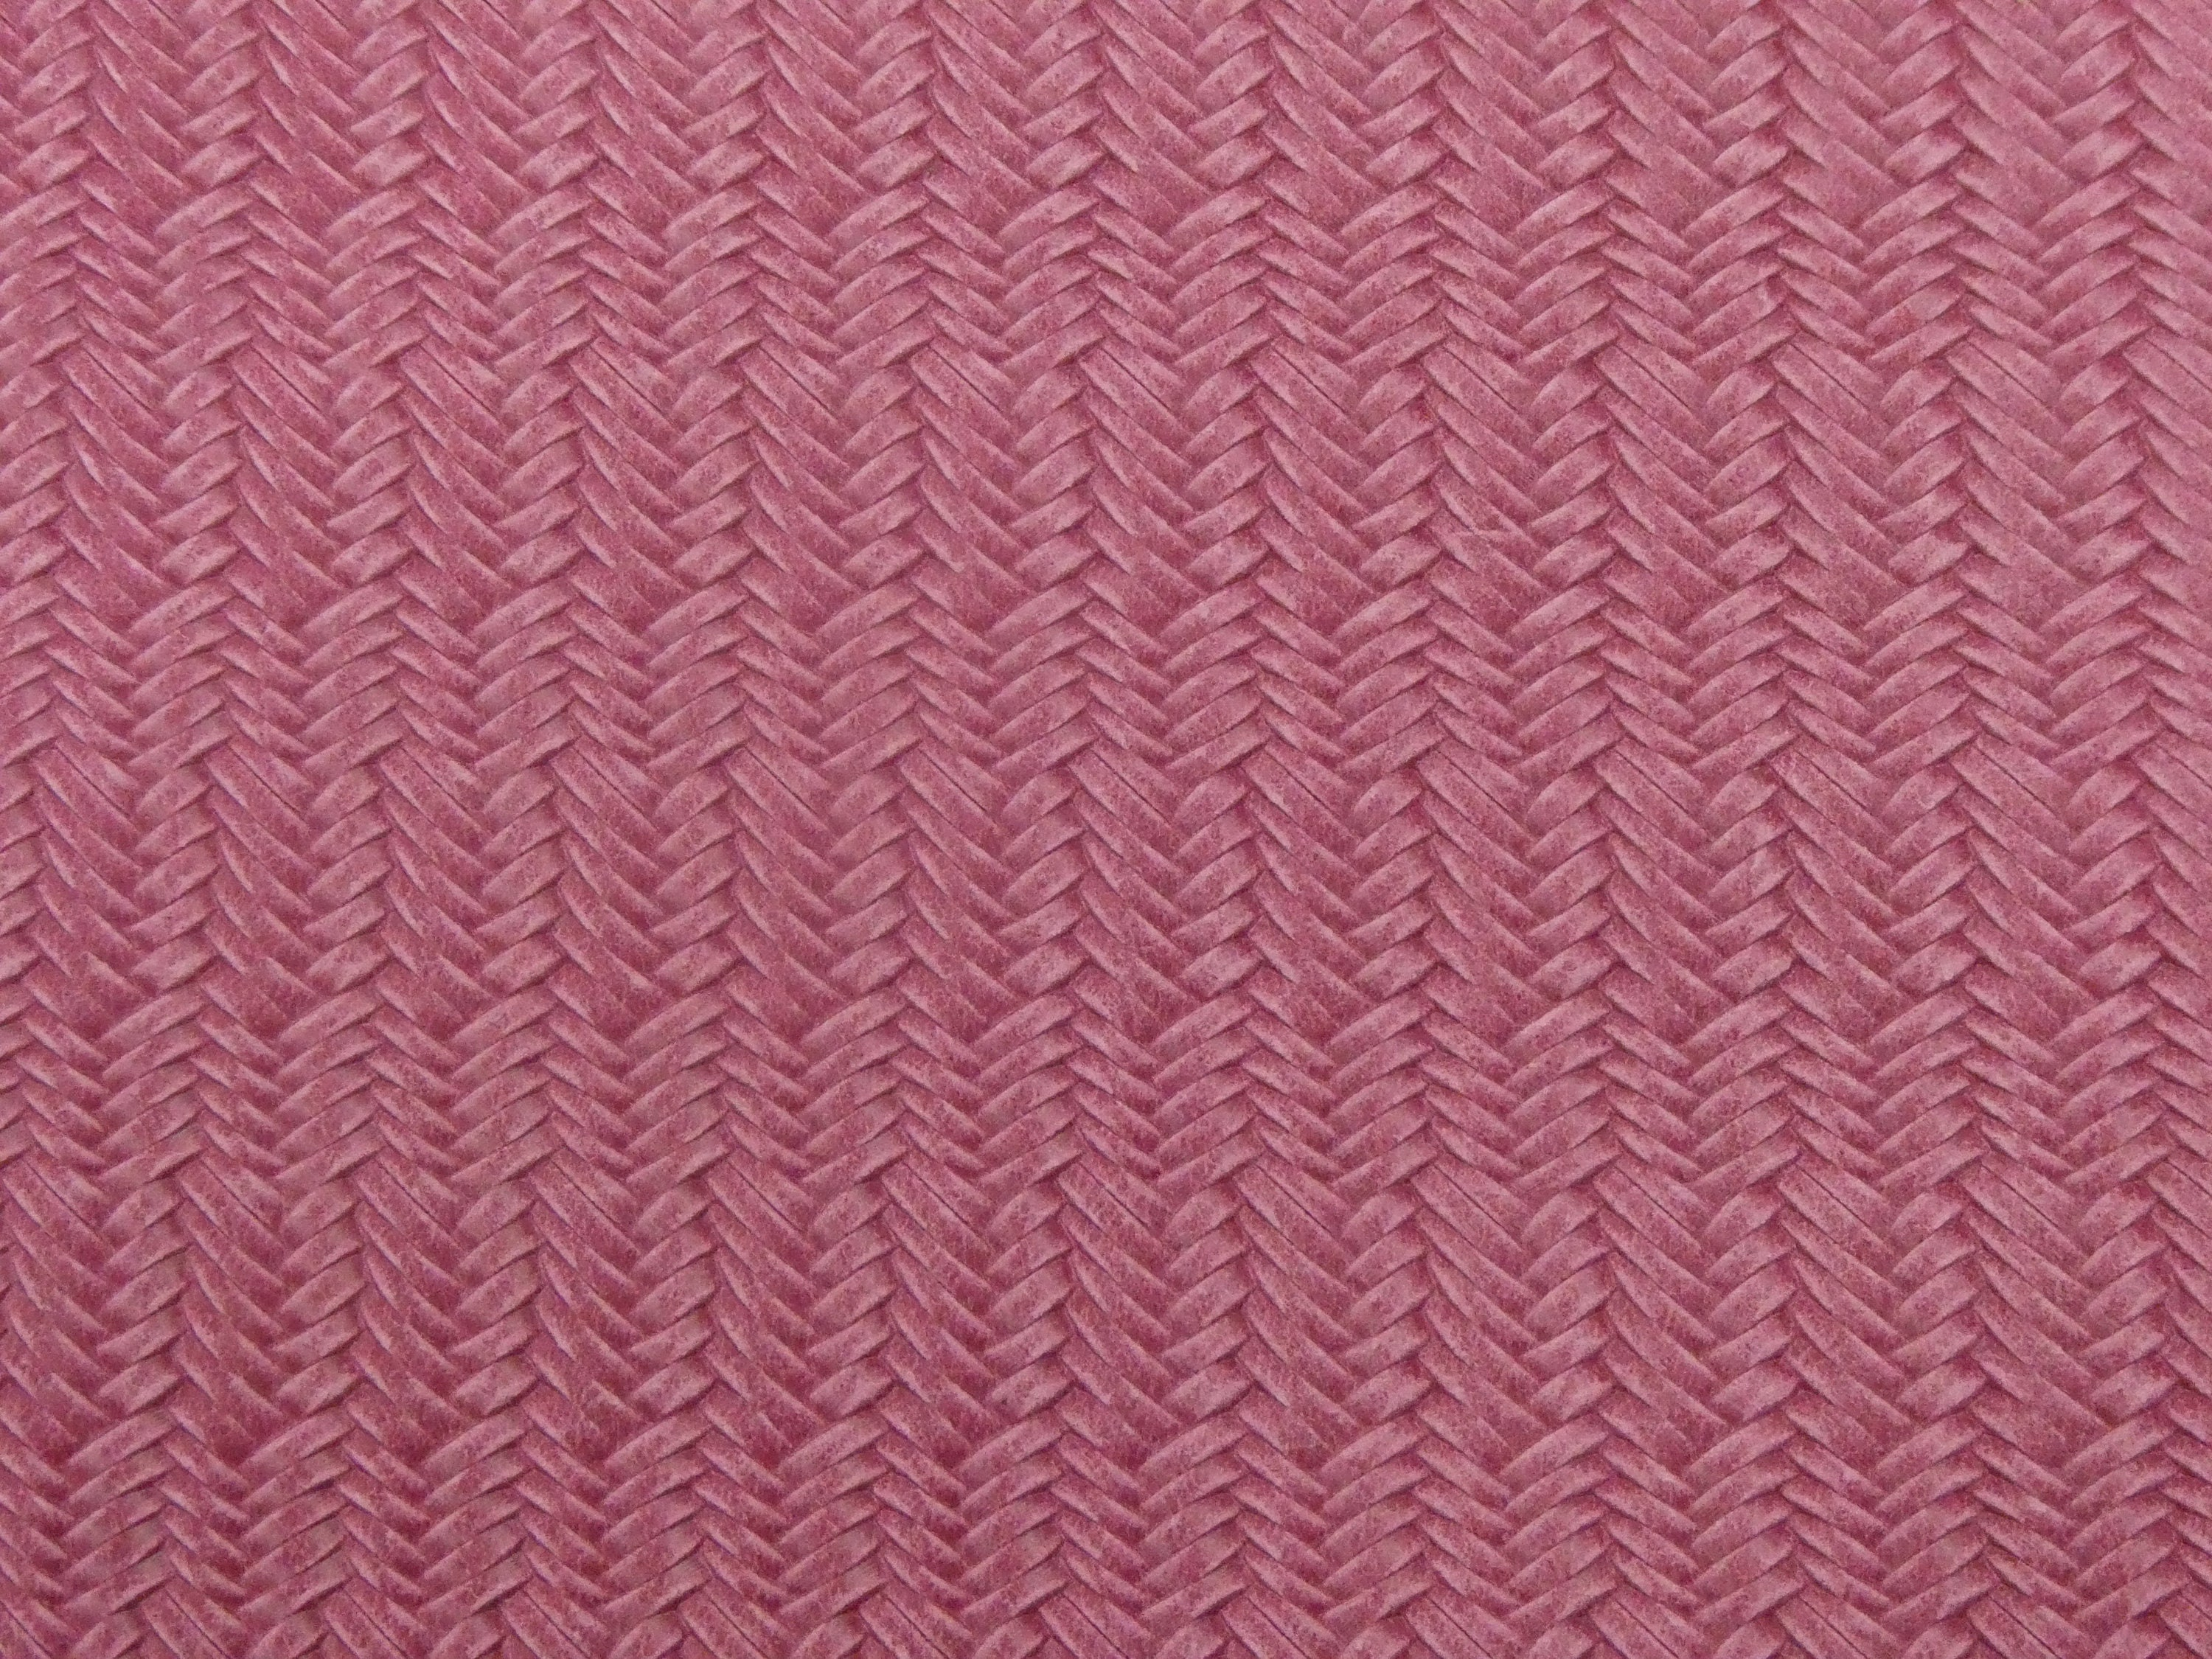 Leather 8x10 DOUBLE BASKET Weave PINK and white Cowhide 3.5 oz  1.4 mm PeggySueAlso\u2122 E1602-05 Hides Available